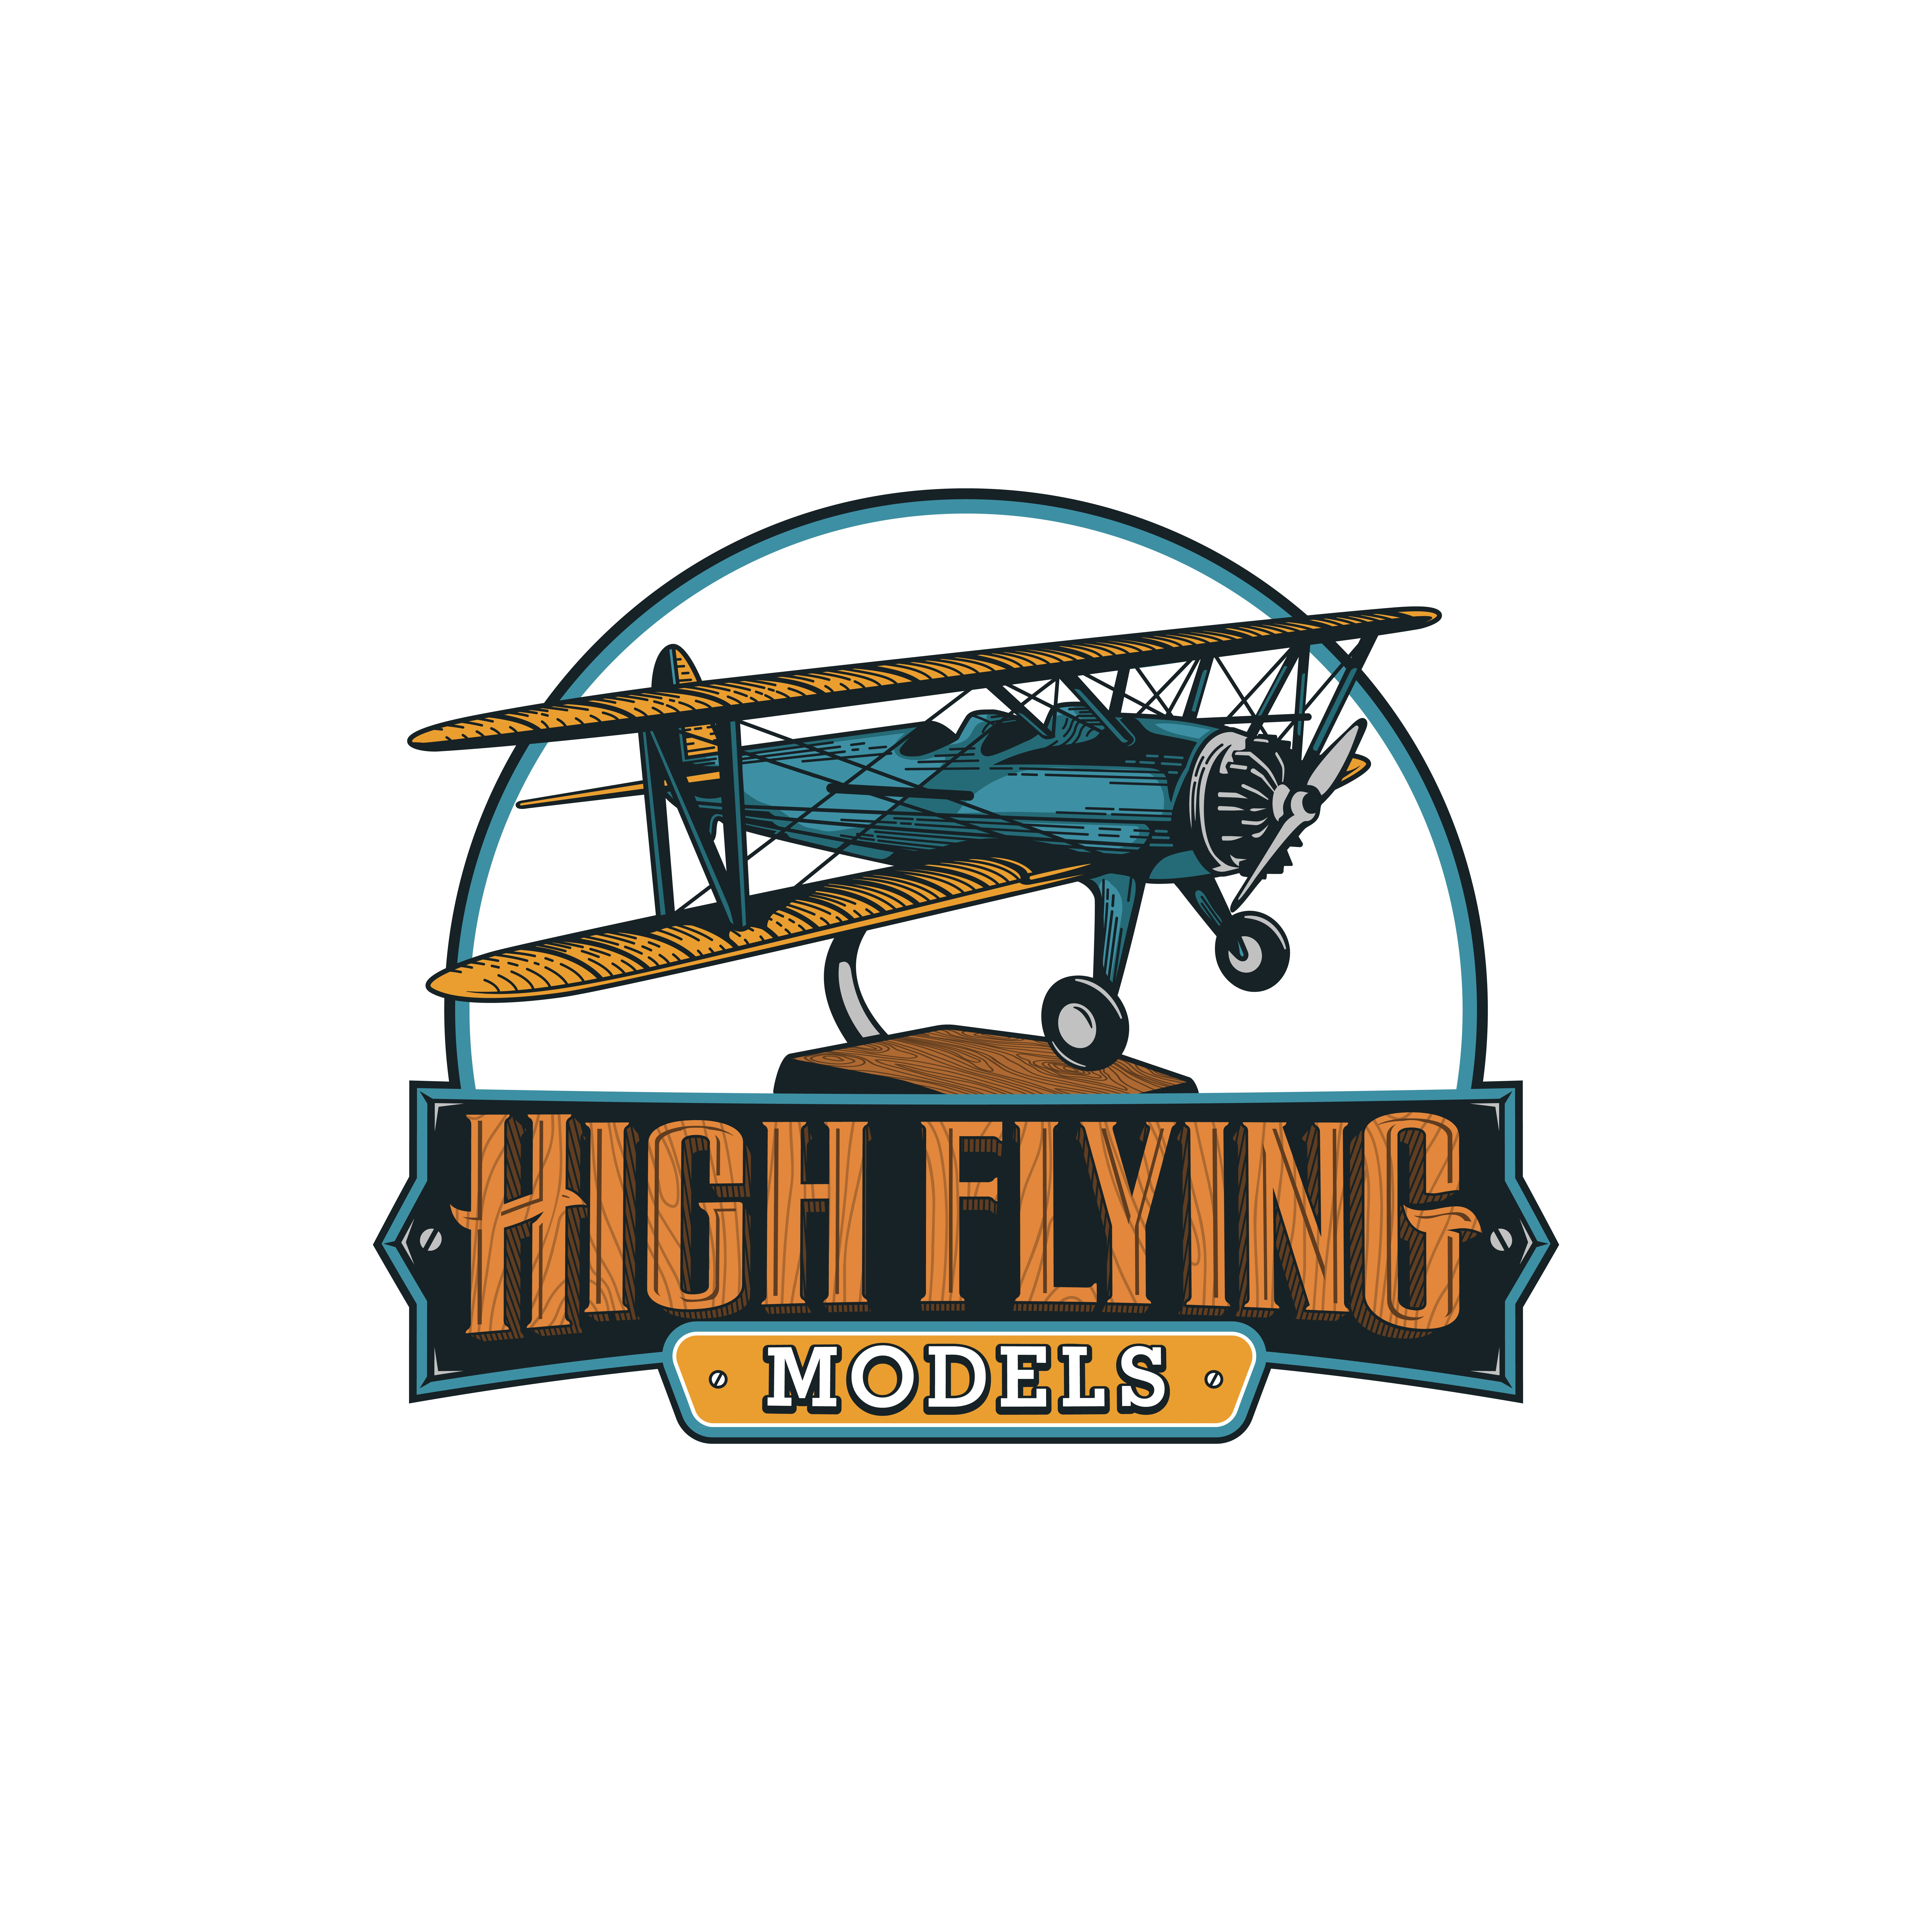 Creativity Wanted for High Flying Models Logo - Brand Launch